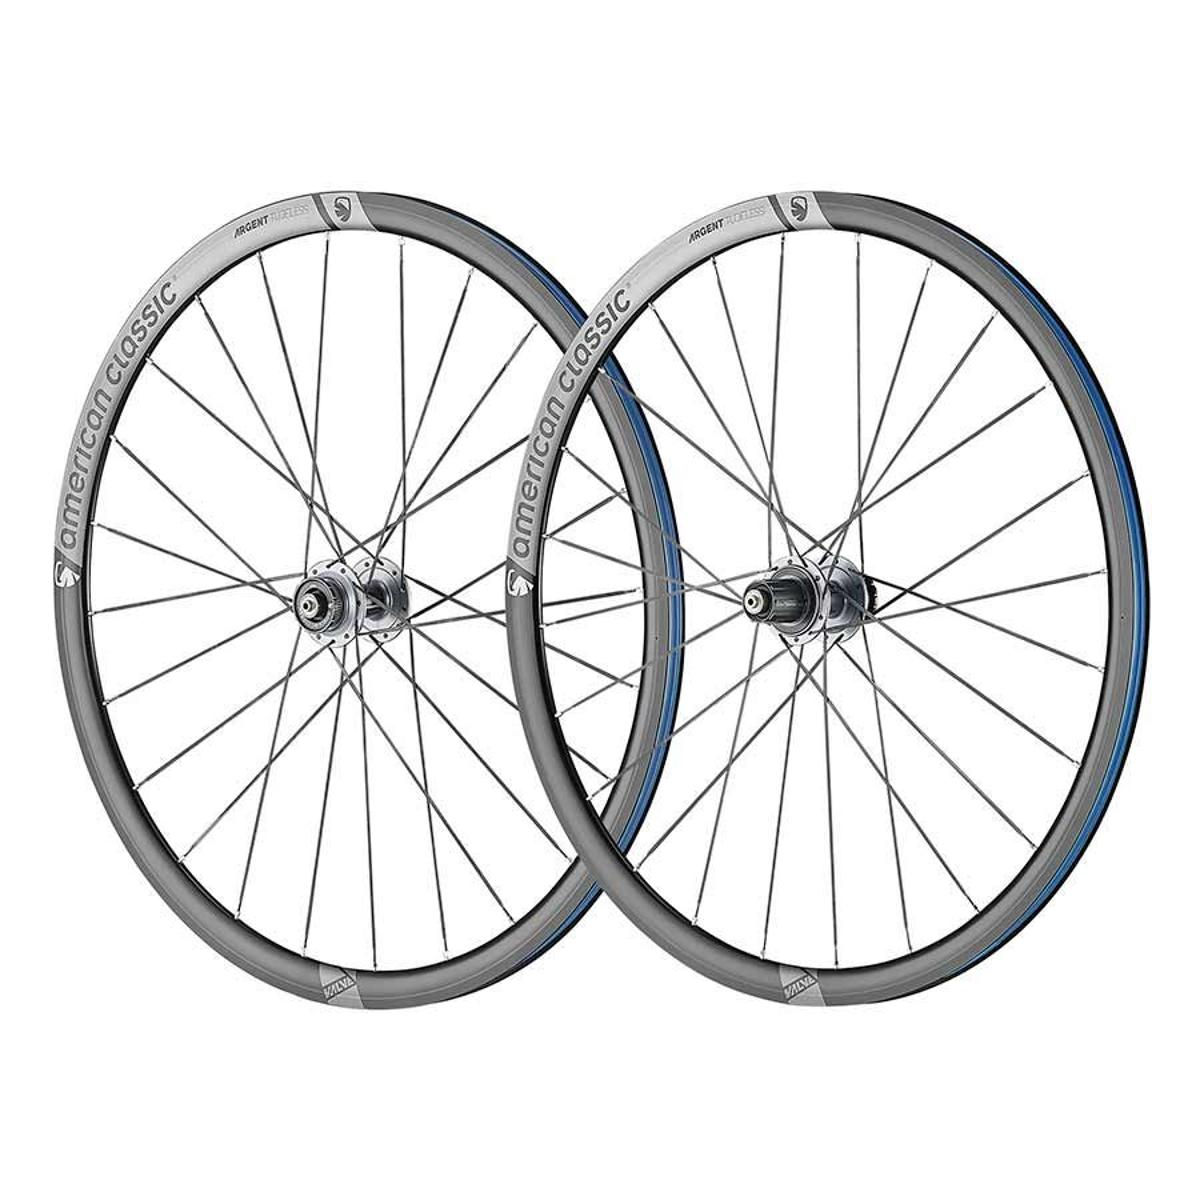 American Classic Argent Road Tubeless Disc 11 Speed Sram/Shimano Qr - 712155786004